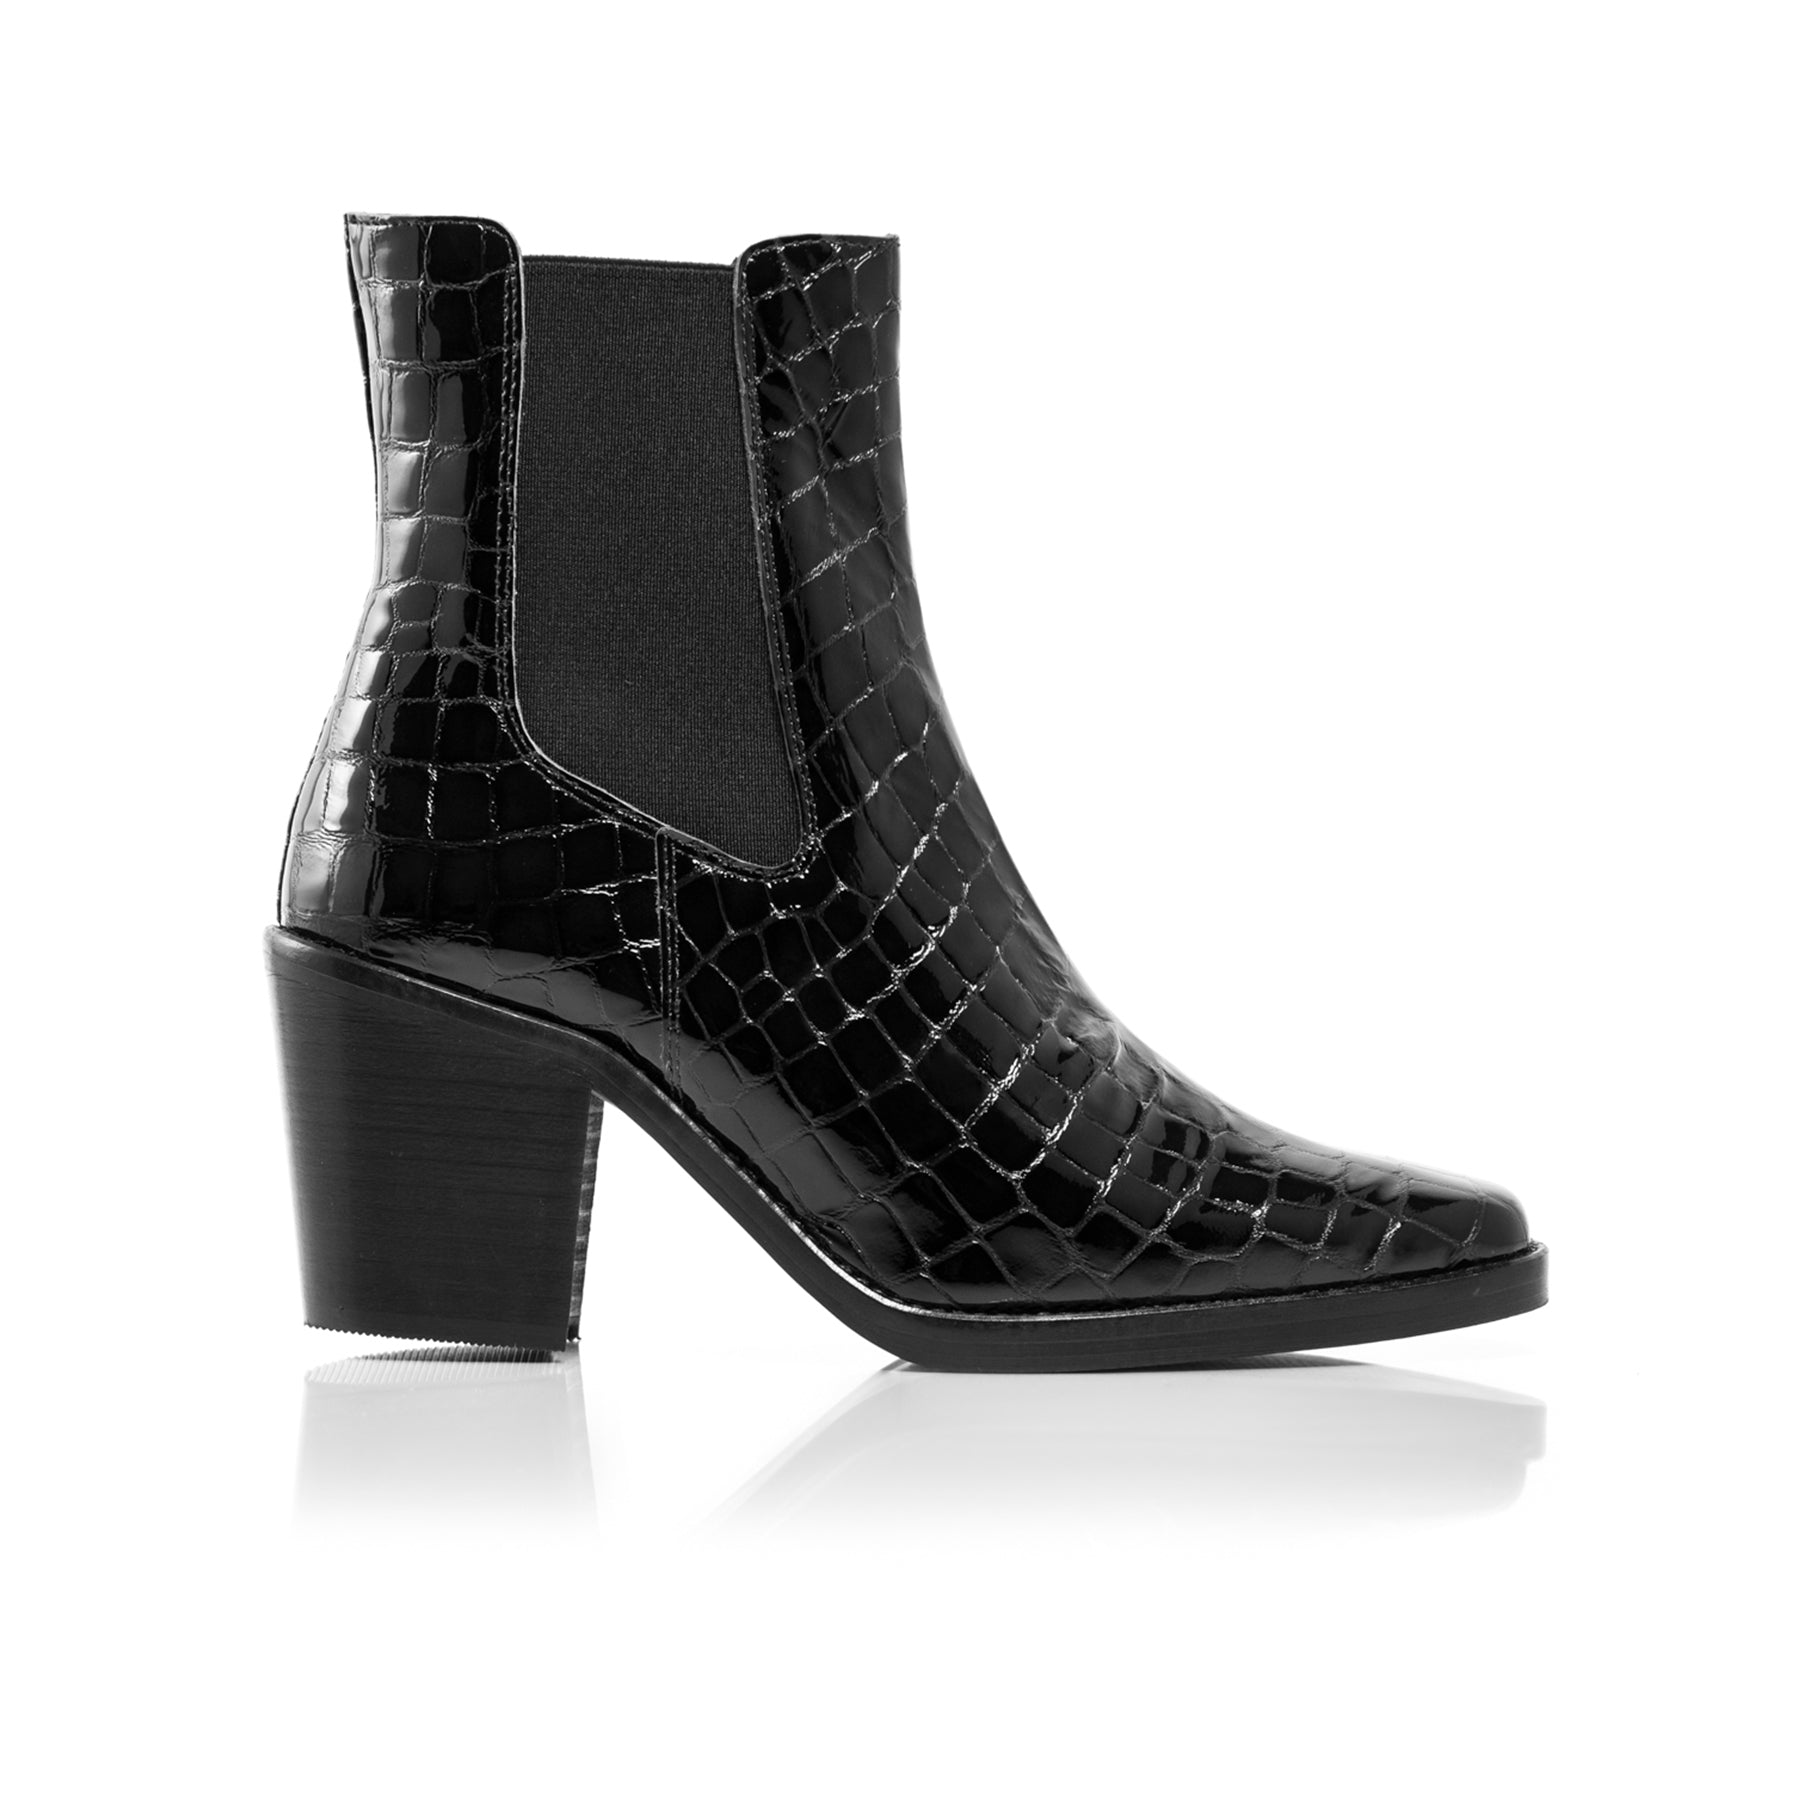 Kentucky Black Croco Ankle Boots